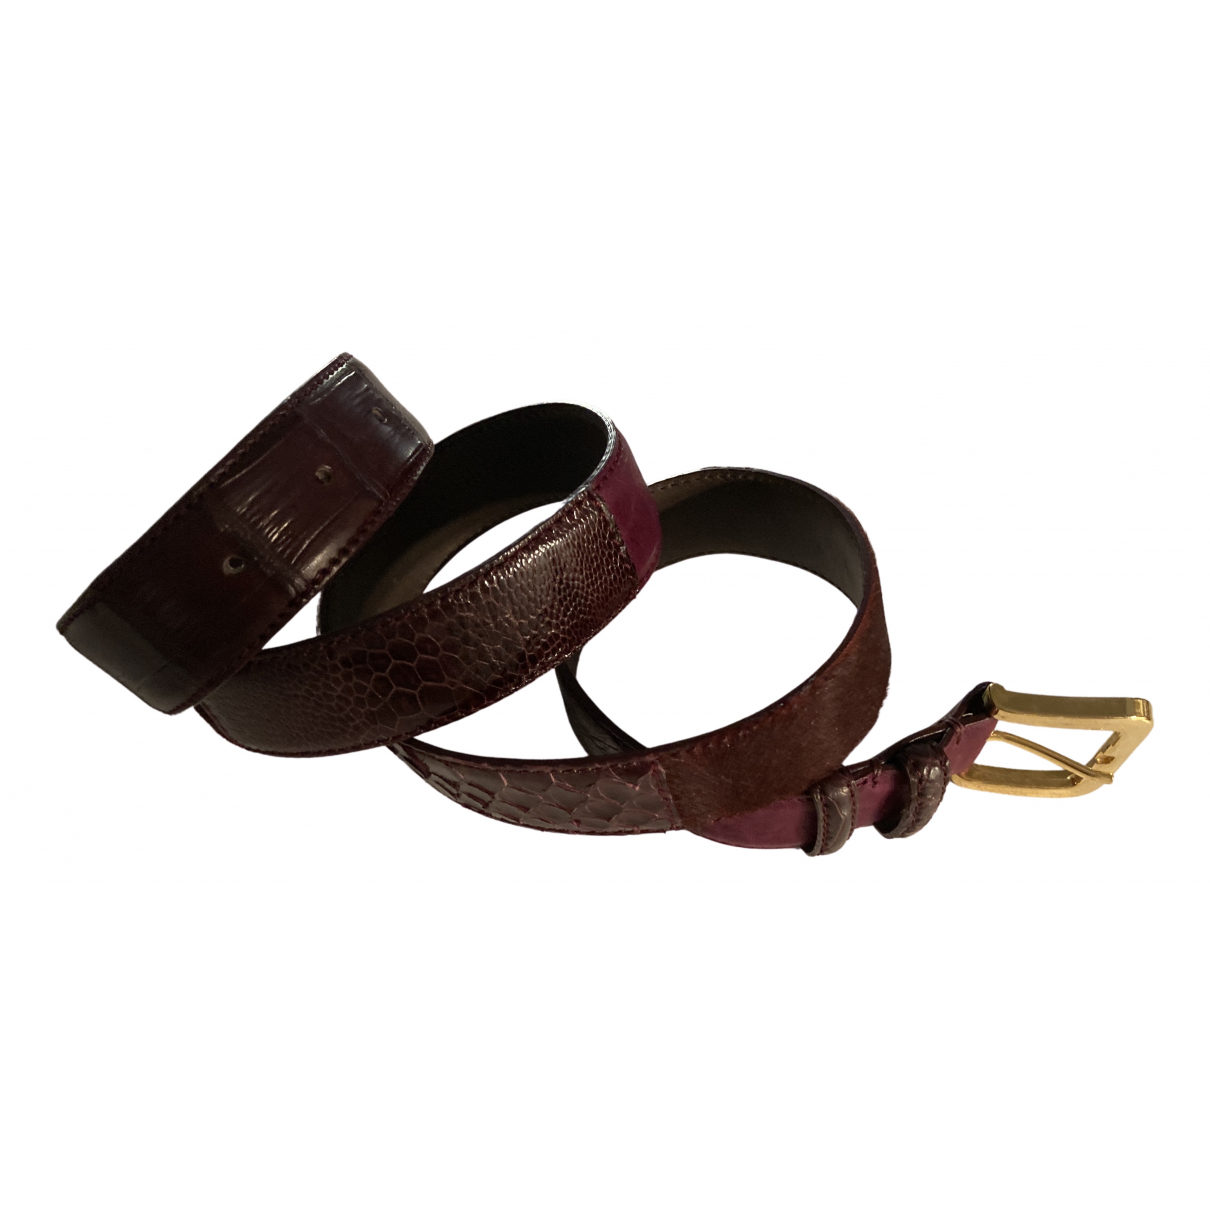 Non Signé / Unsigned Hippie Chic Burgundy Exotic leathers belt for Women 95 cm